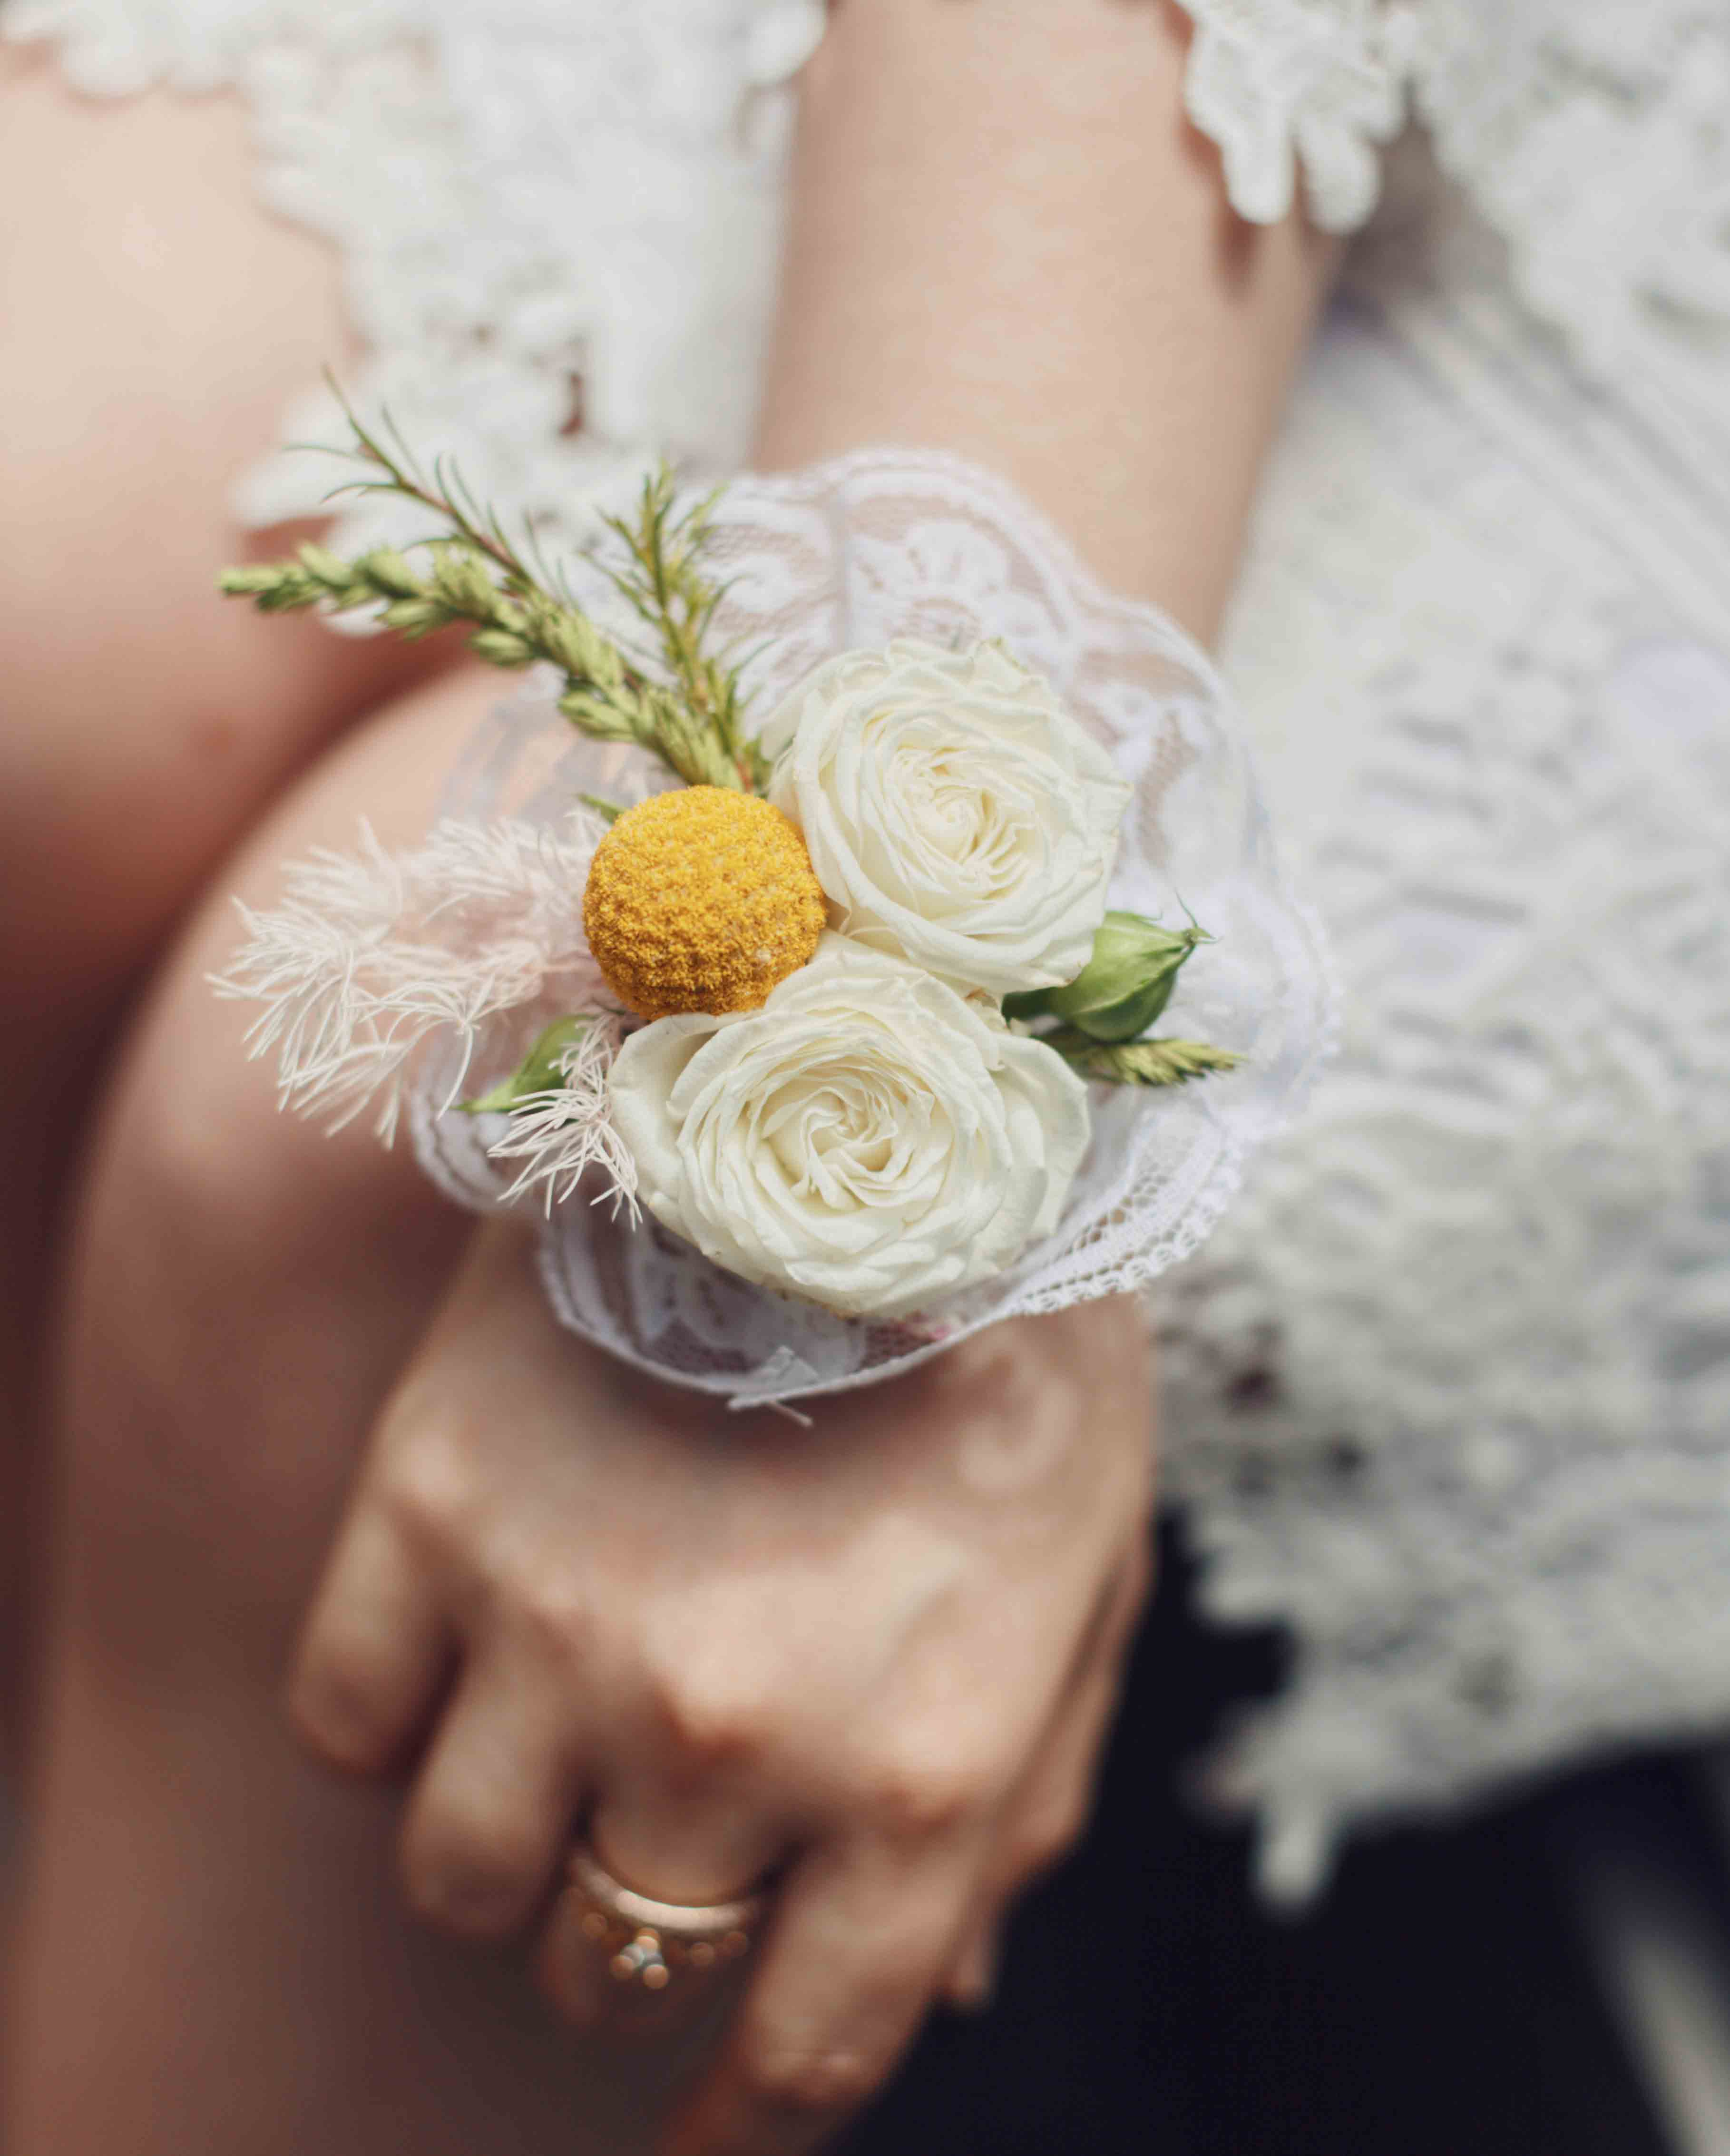 iiTechnology Corsage by Luxe Dream Floral Studio